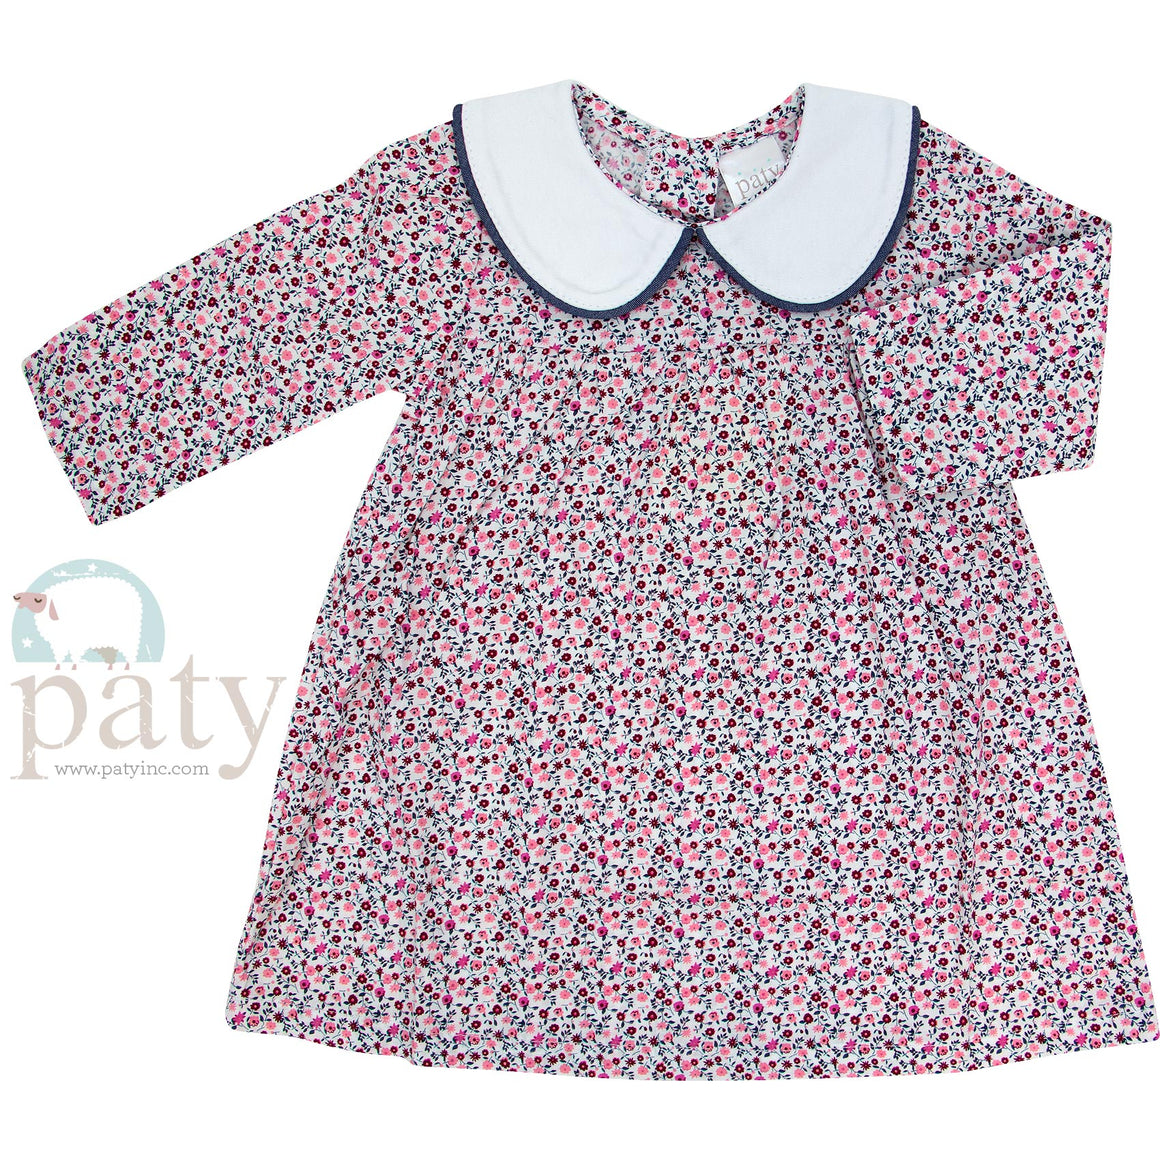 Paty Floral Dress with Collar